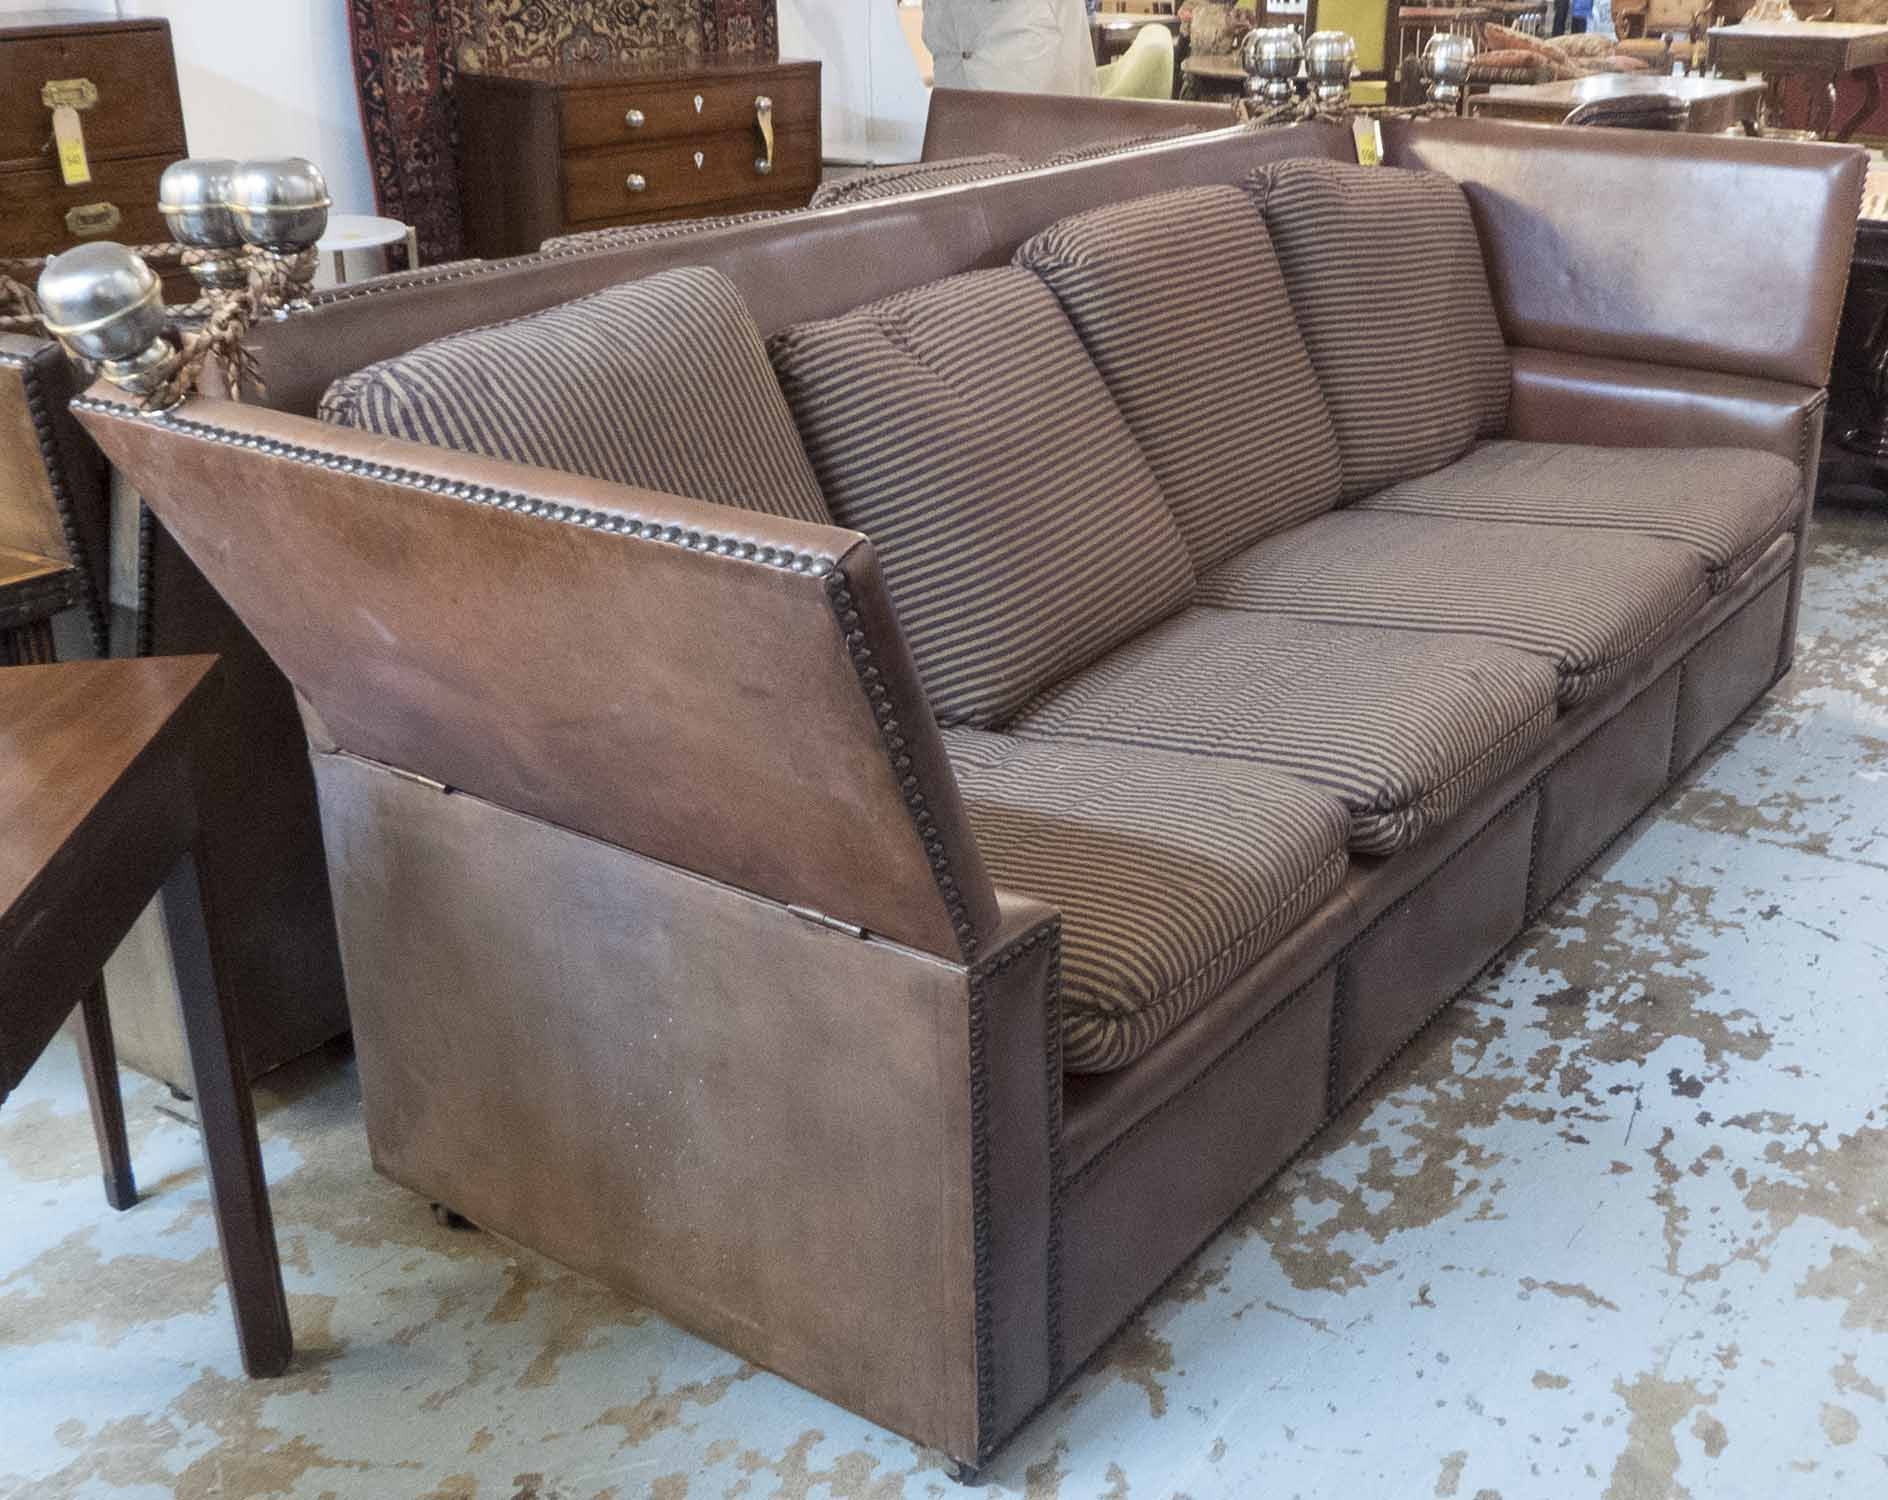 Lot 19 - KNOLE SOFA, of substantial proportions, brown leather with studded detail and striped cushions,